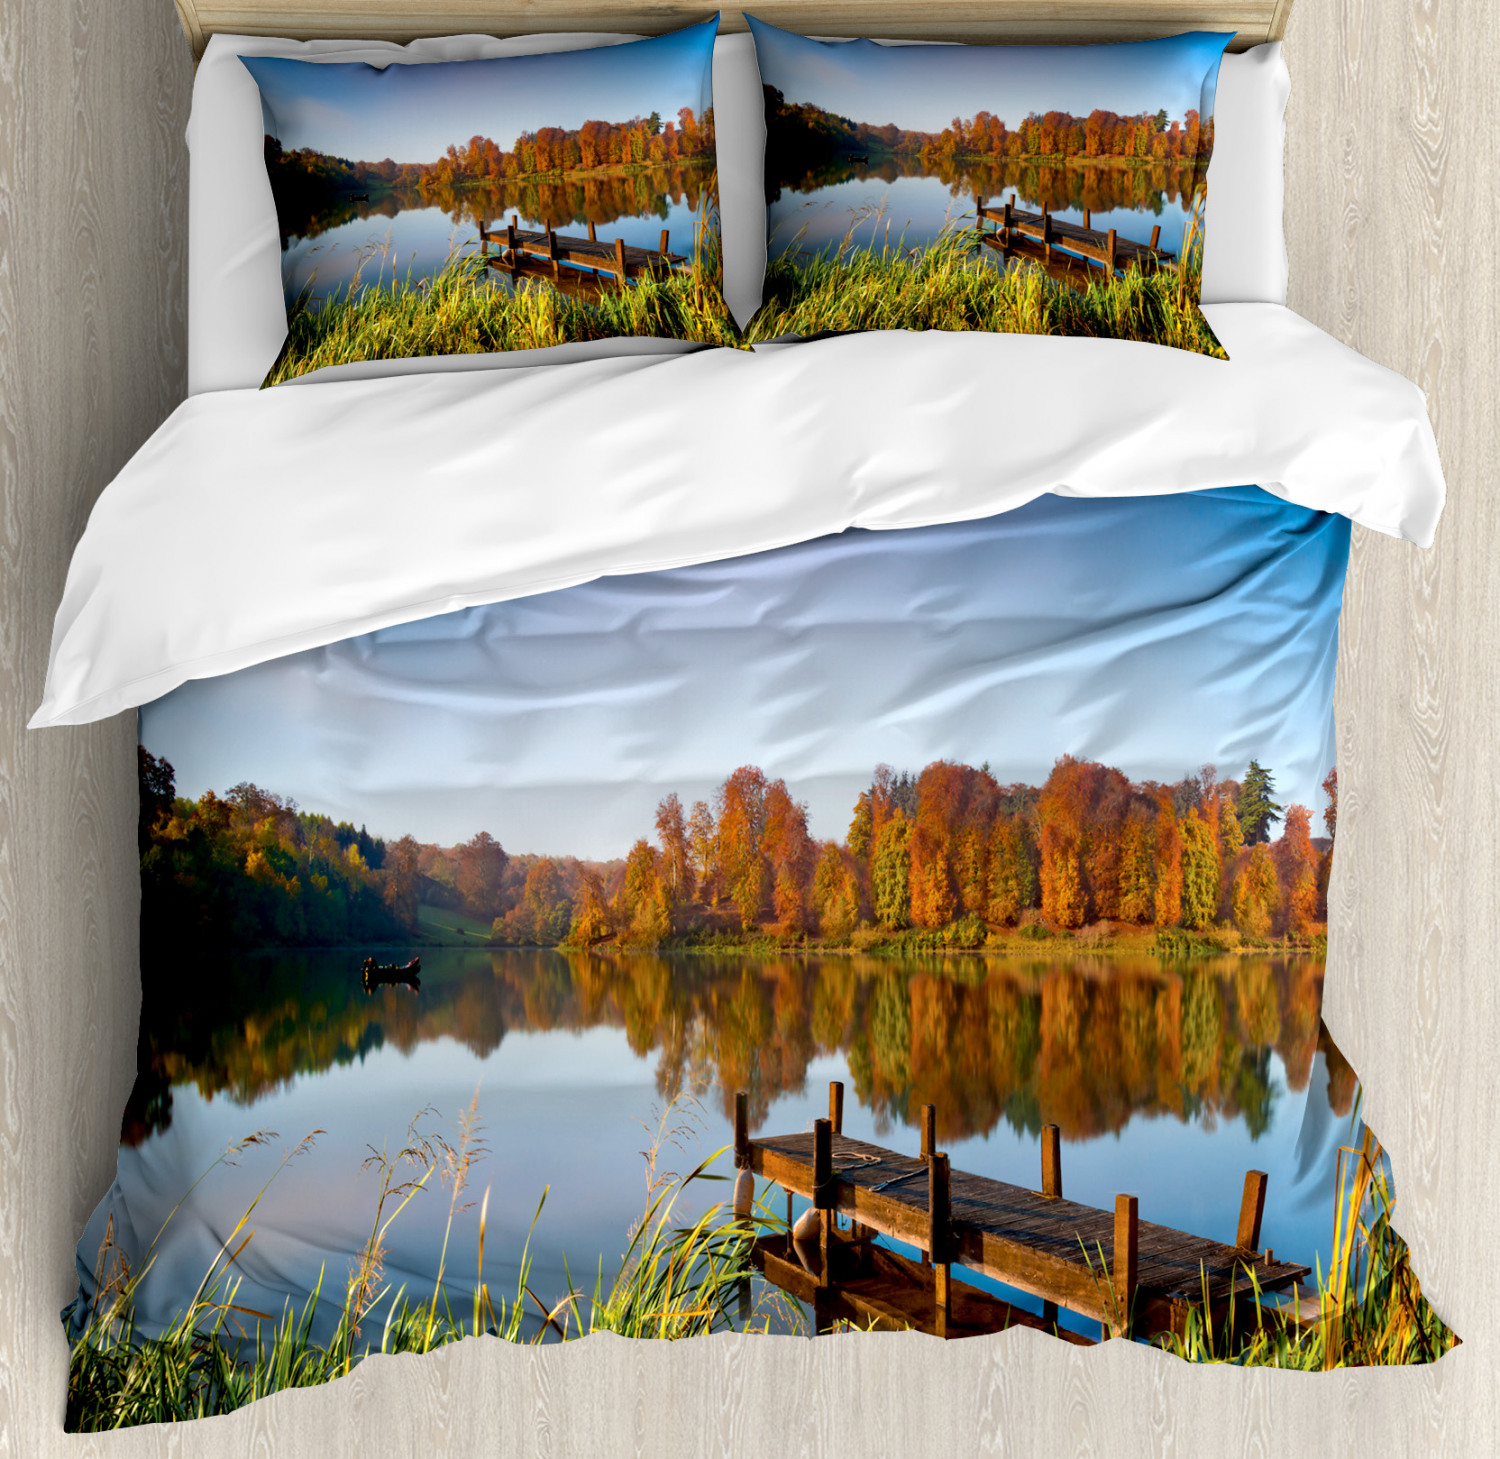 Scenery Duvet Cover Set with Pillow Shams Fishing on a Lake View Print